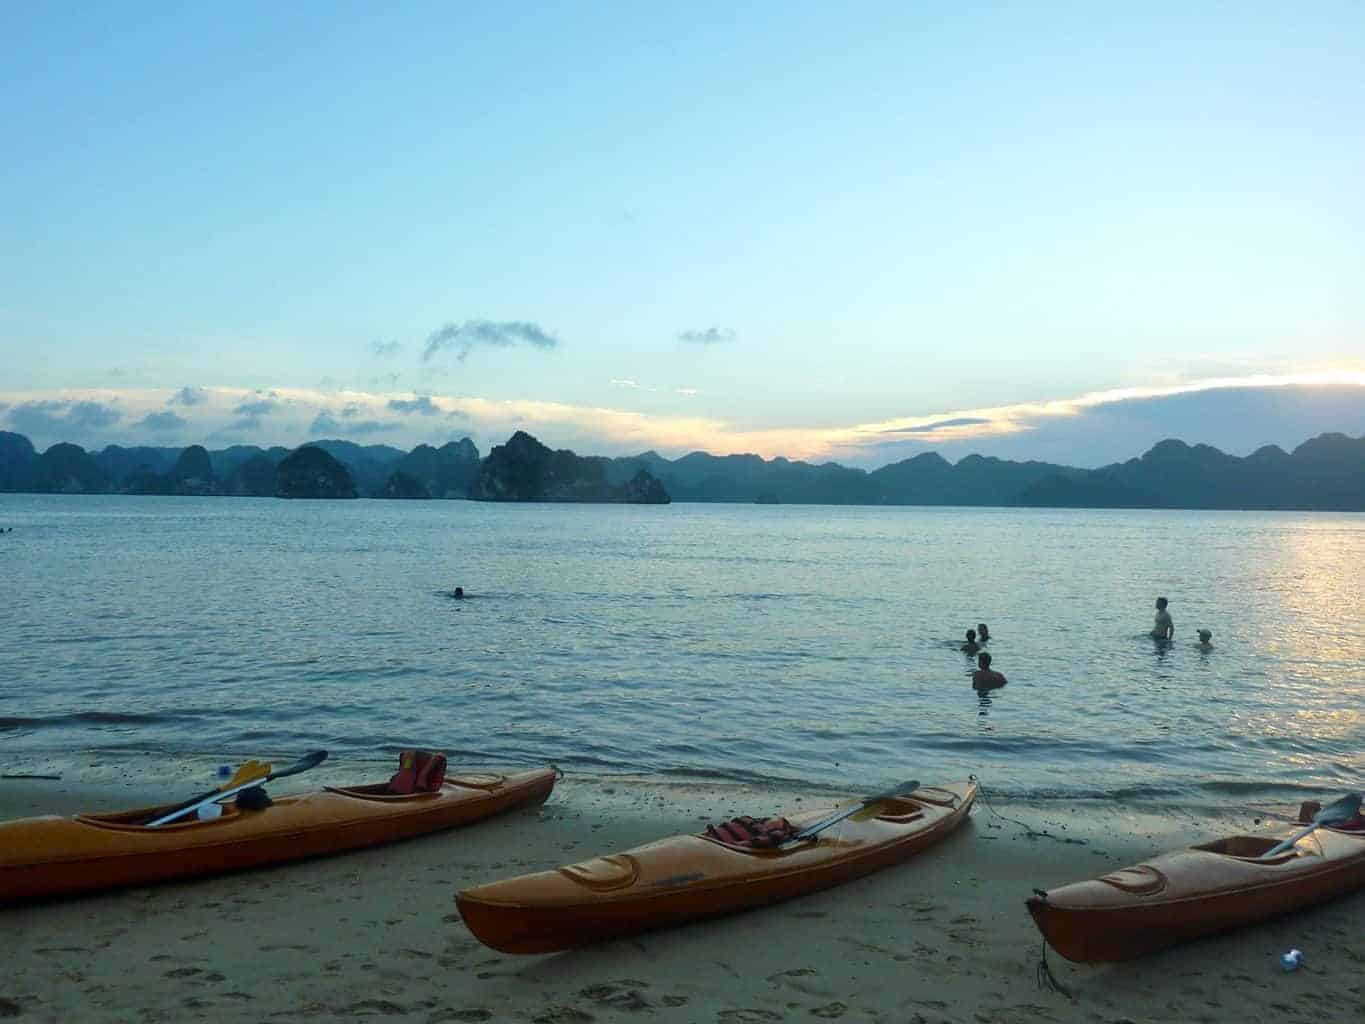 Beach kayaked to in Halong Bay